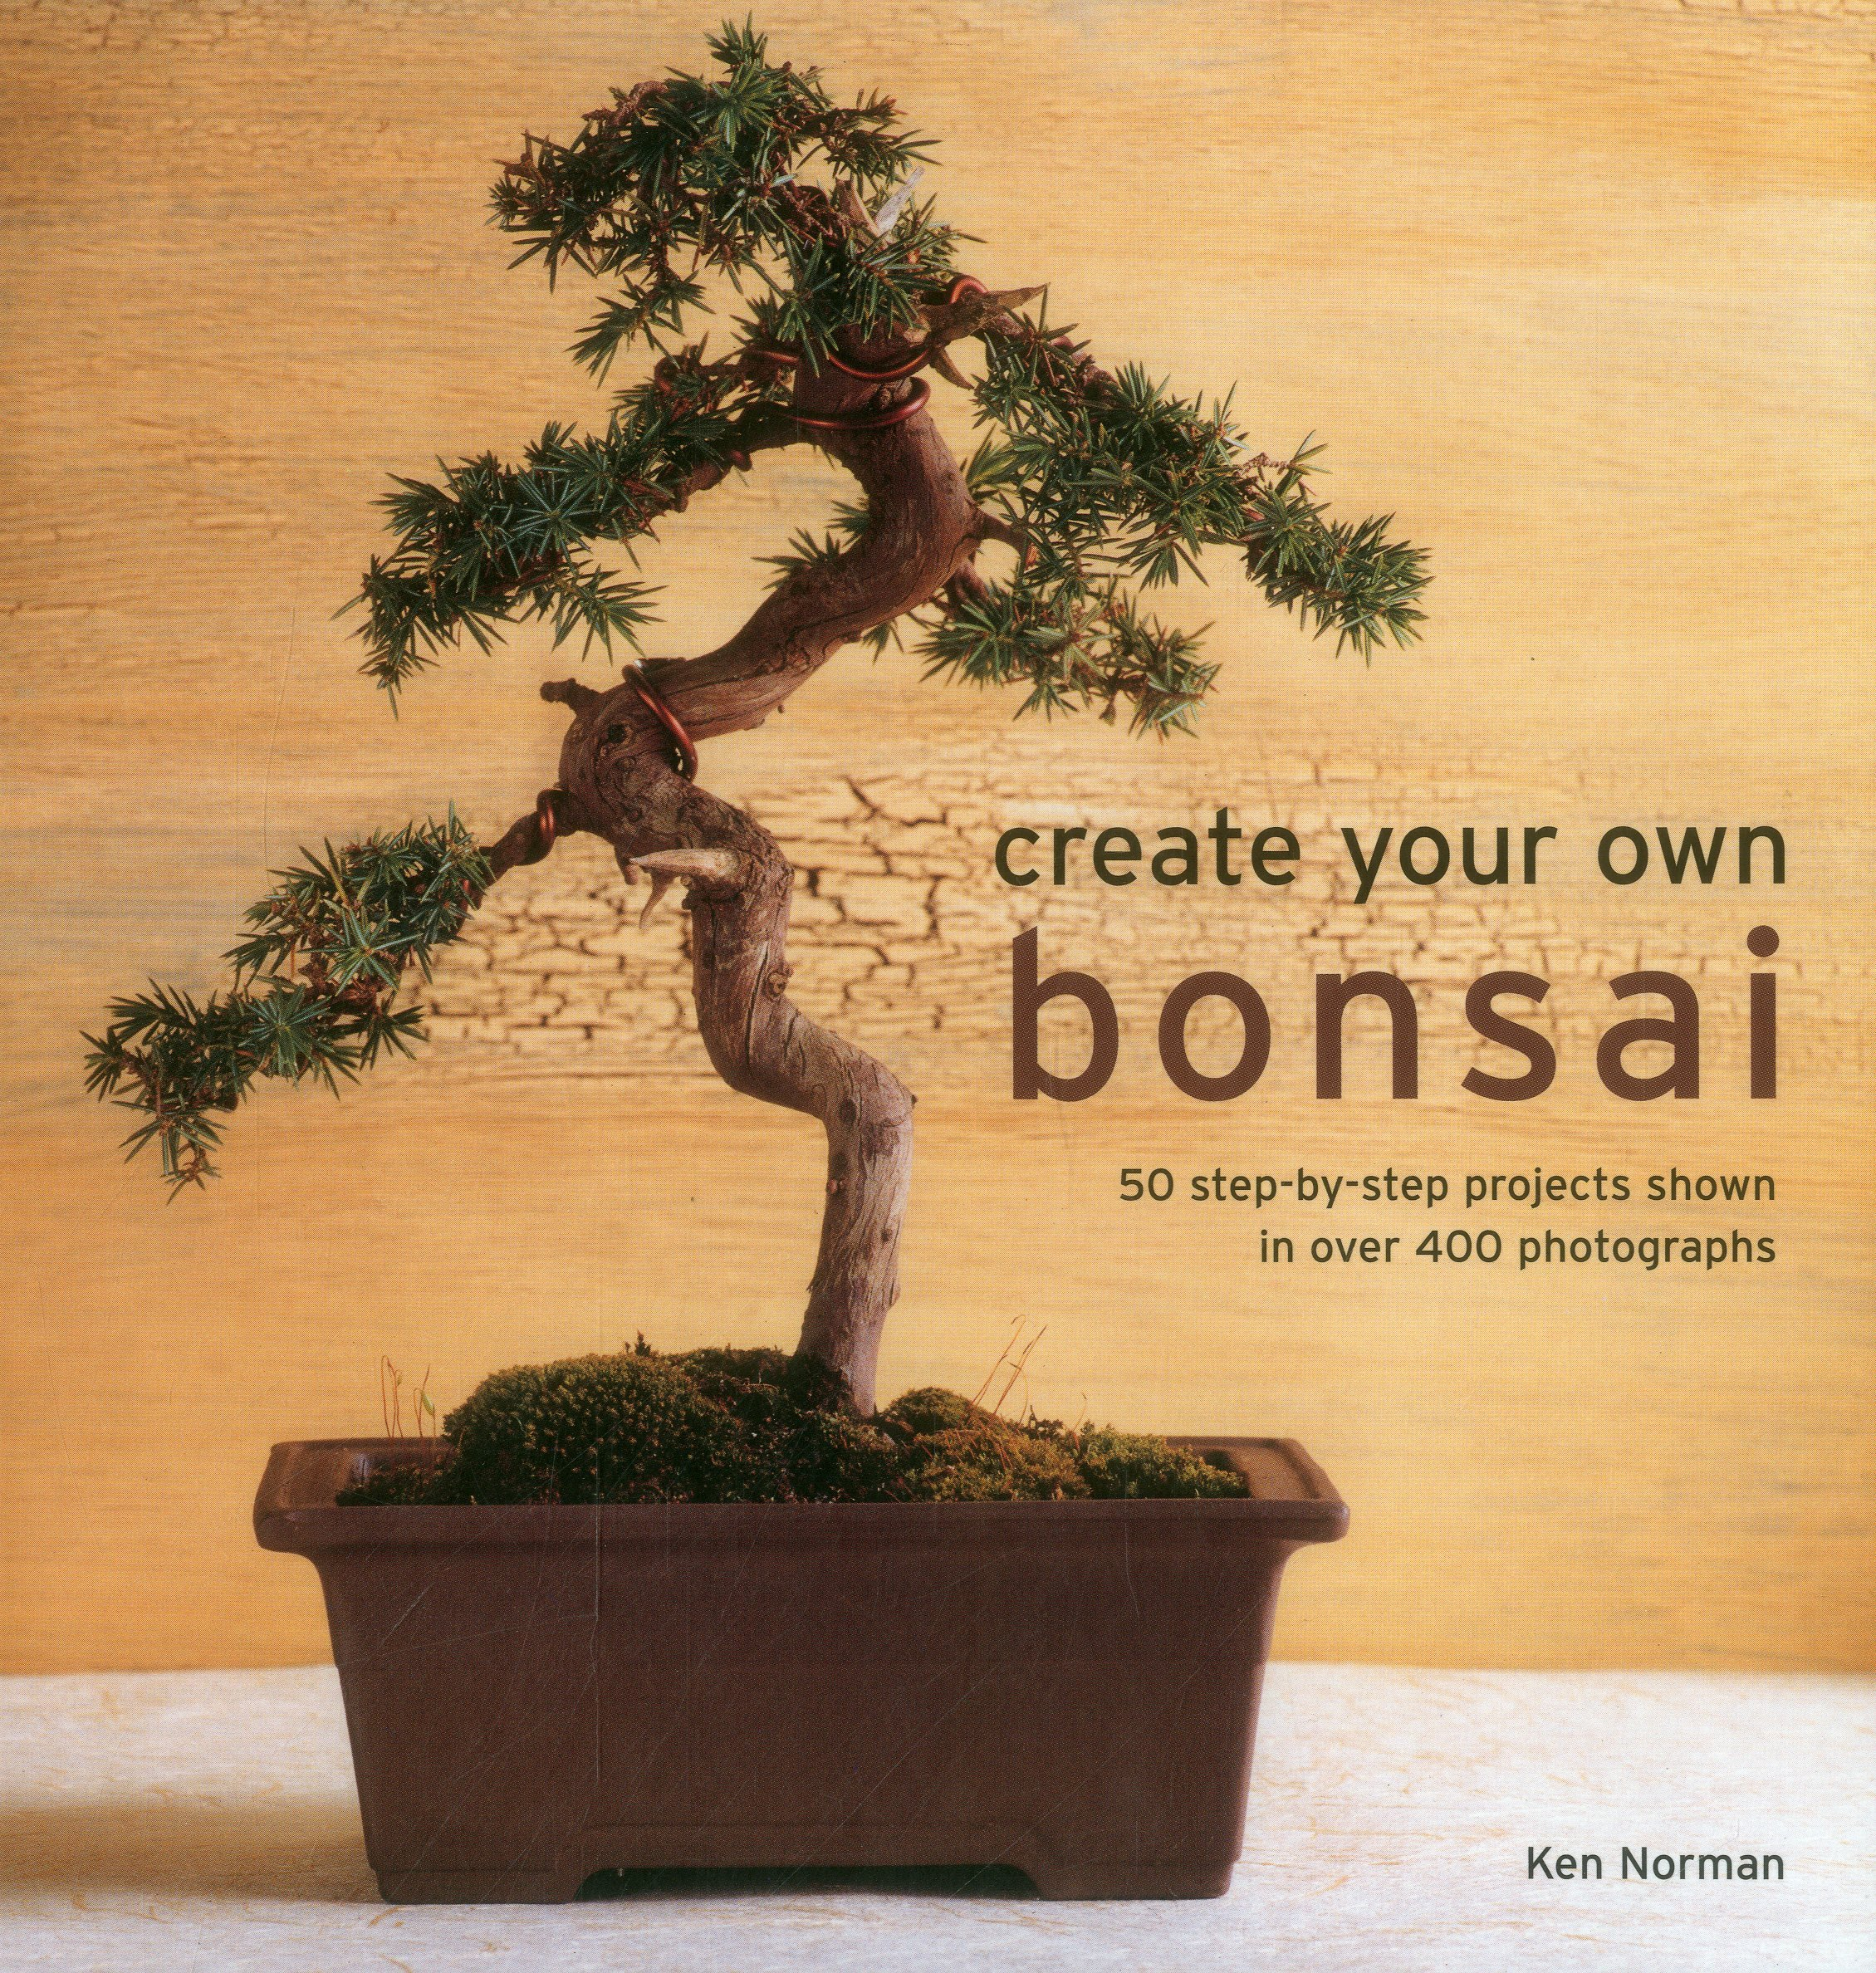 Create Your Own Bonsai: 50 Step-By-Step Projects Shown In Over 400 Photographs